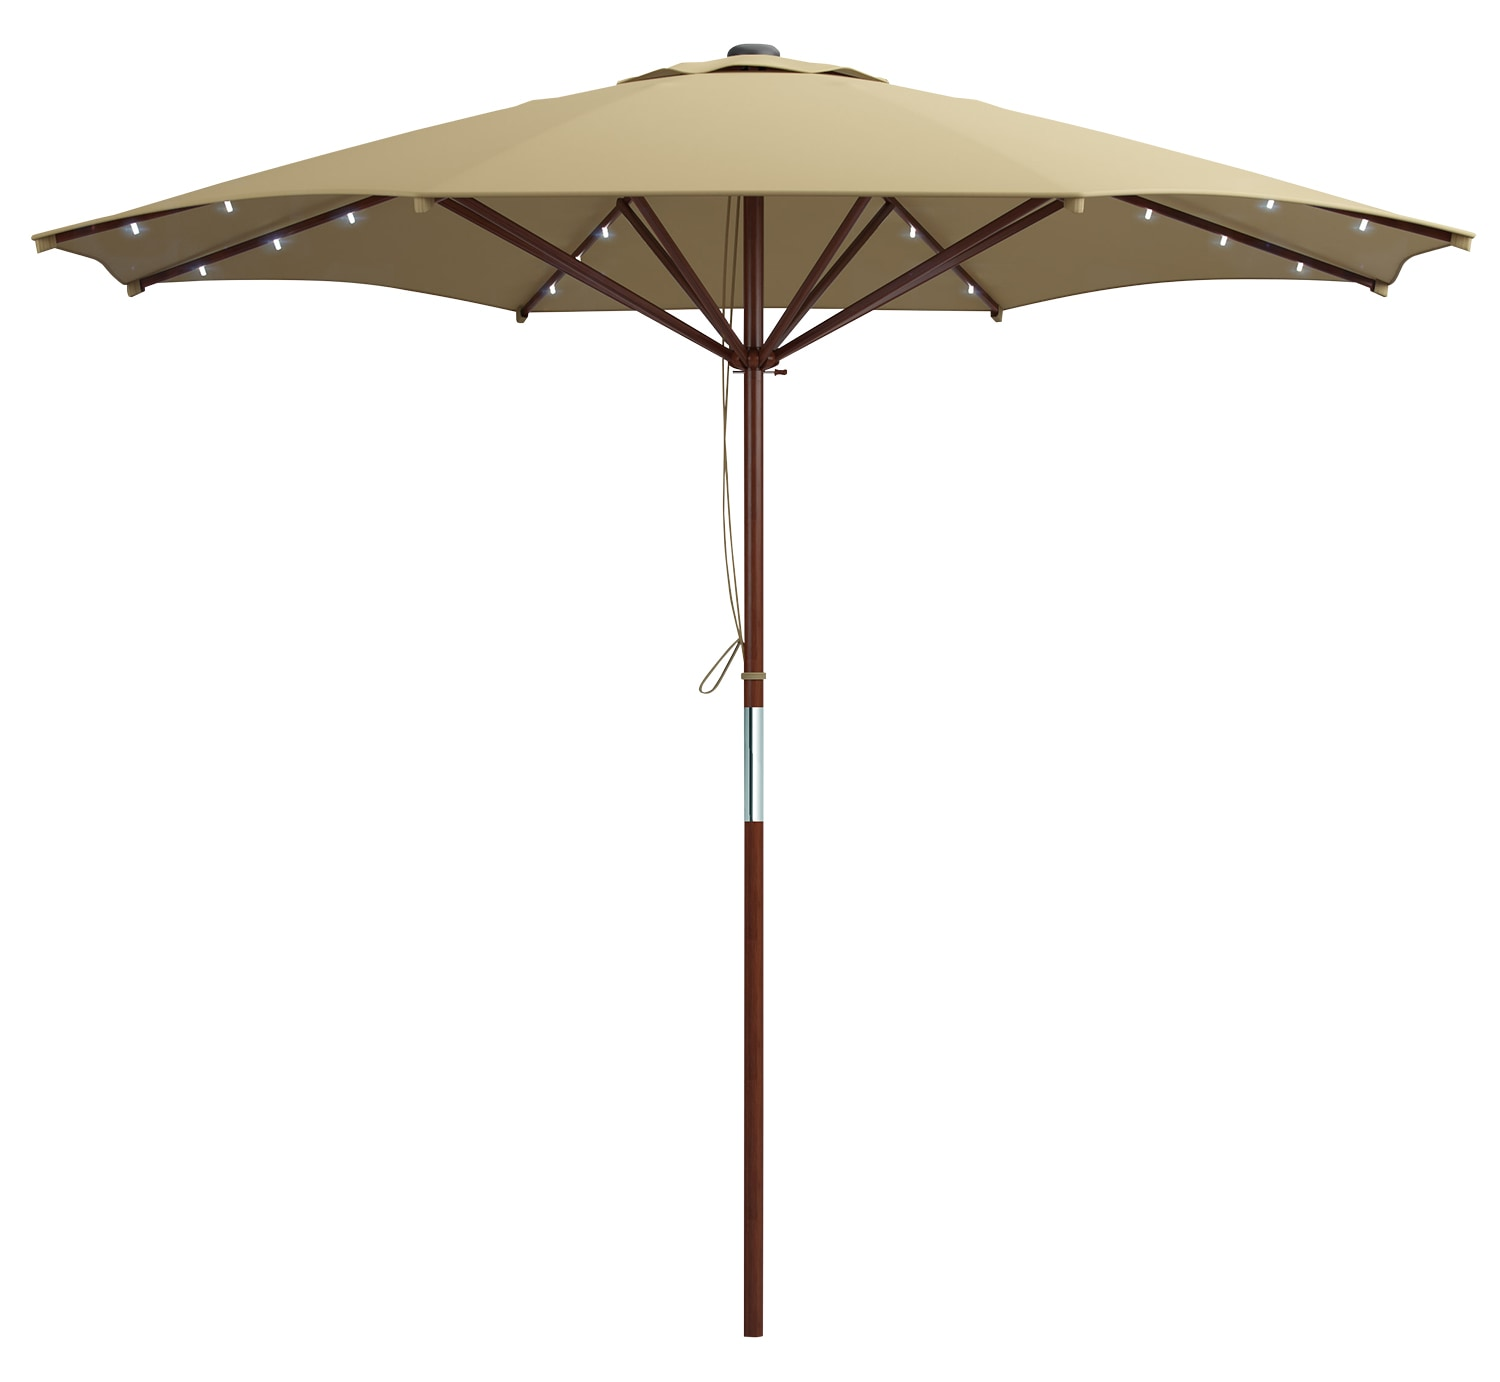 Wood-Frame Patio Umbrella with LED Lighting – Taupe